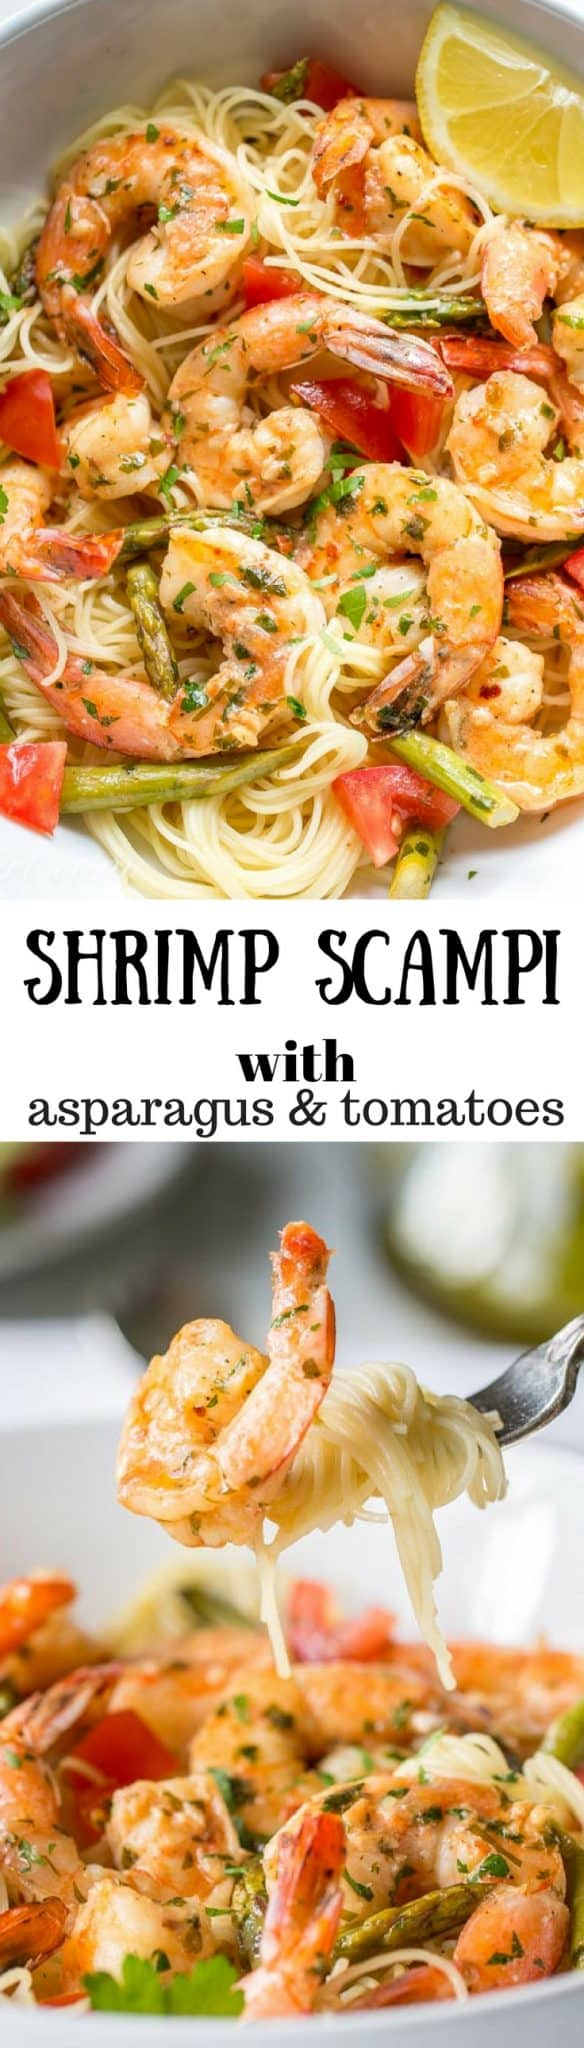 Shrimp Scampi with Asparagus and Tomatoes ~  a wonderful restaurant quality dish you can make at home!    www.savingdessert.com